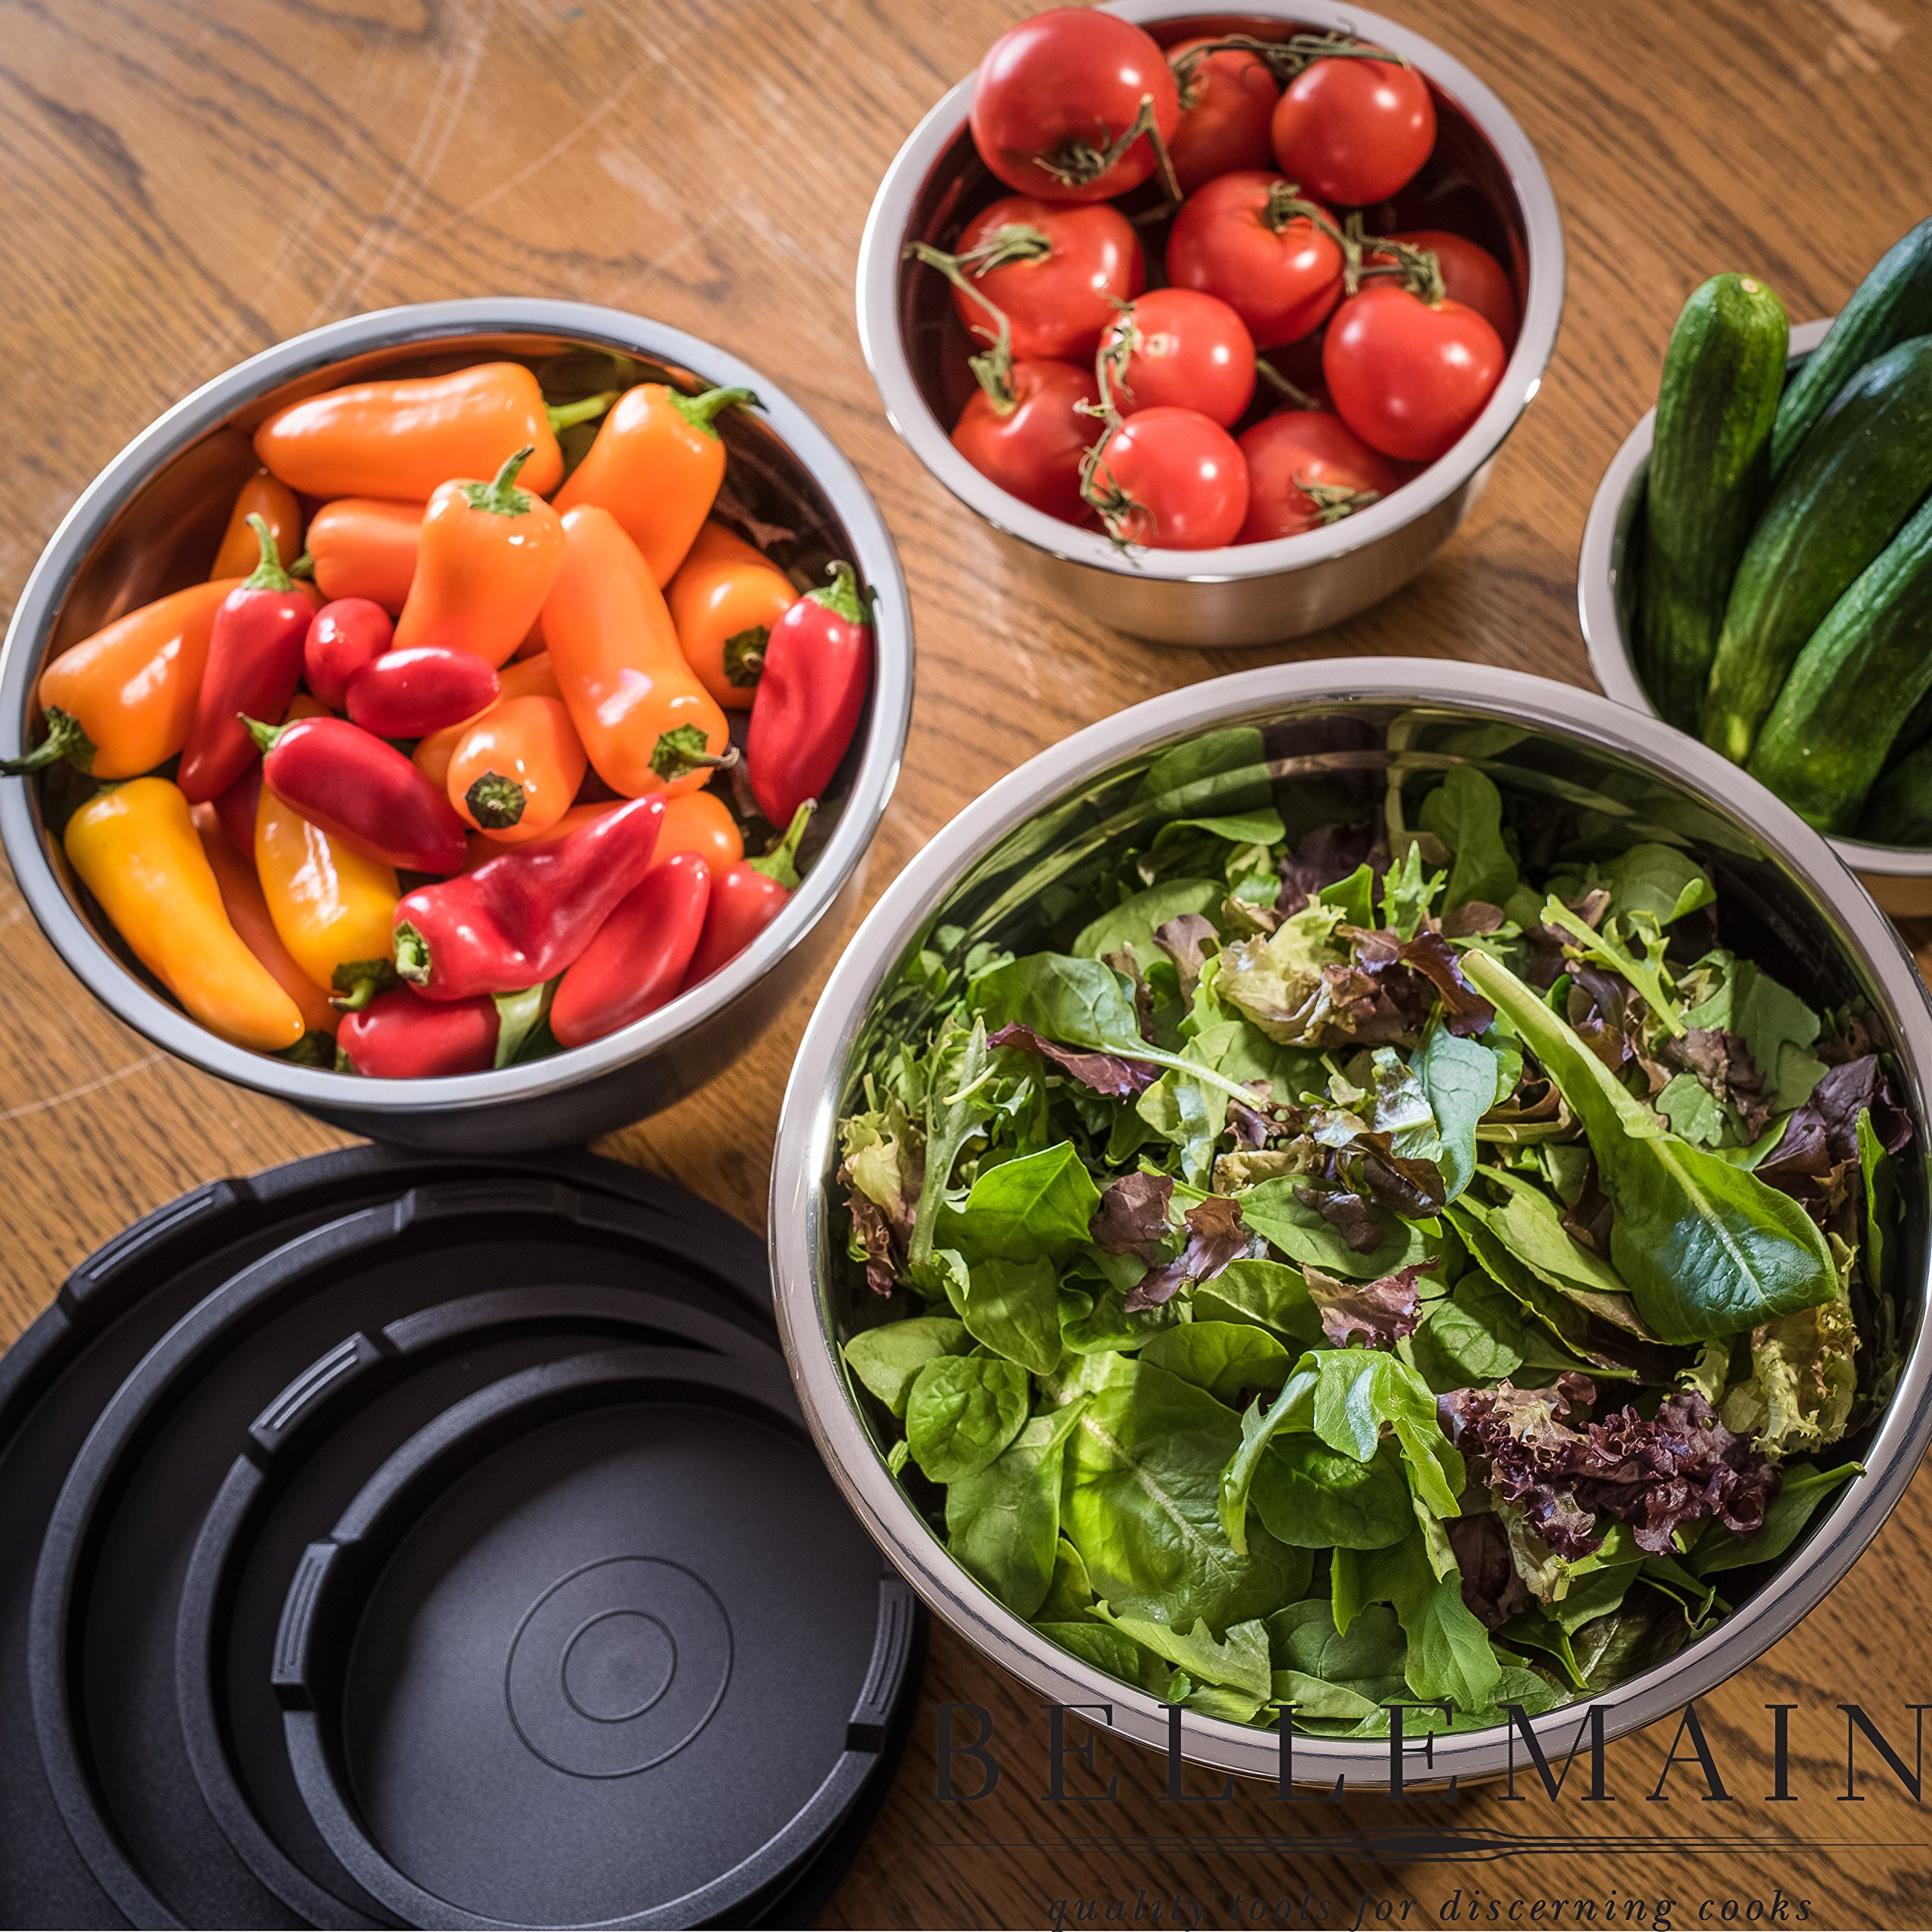 Top Rated Bellemain Stainless Steel Non-Slip Mixing Bowls with Lids, 4 Piece Set Includes 1 Qt, 1.5 Qt, 3 Qt. & 5 Qt. by Bellemain (Image #3)